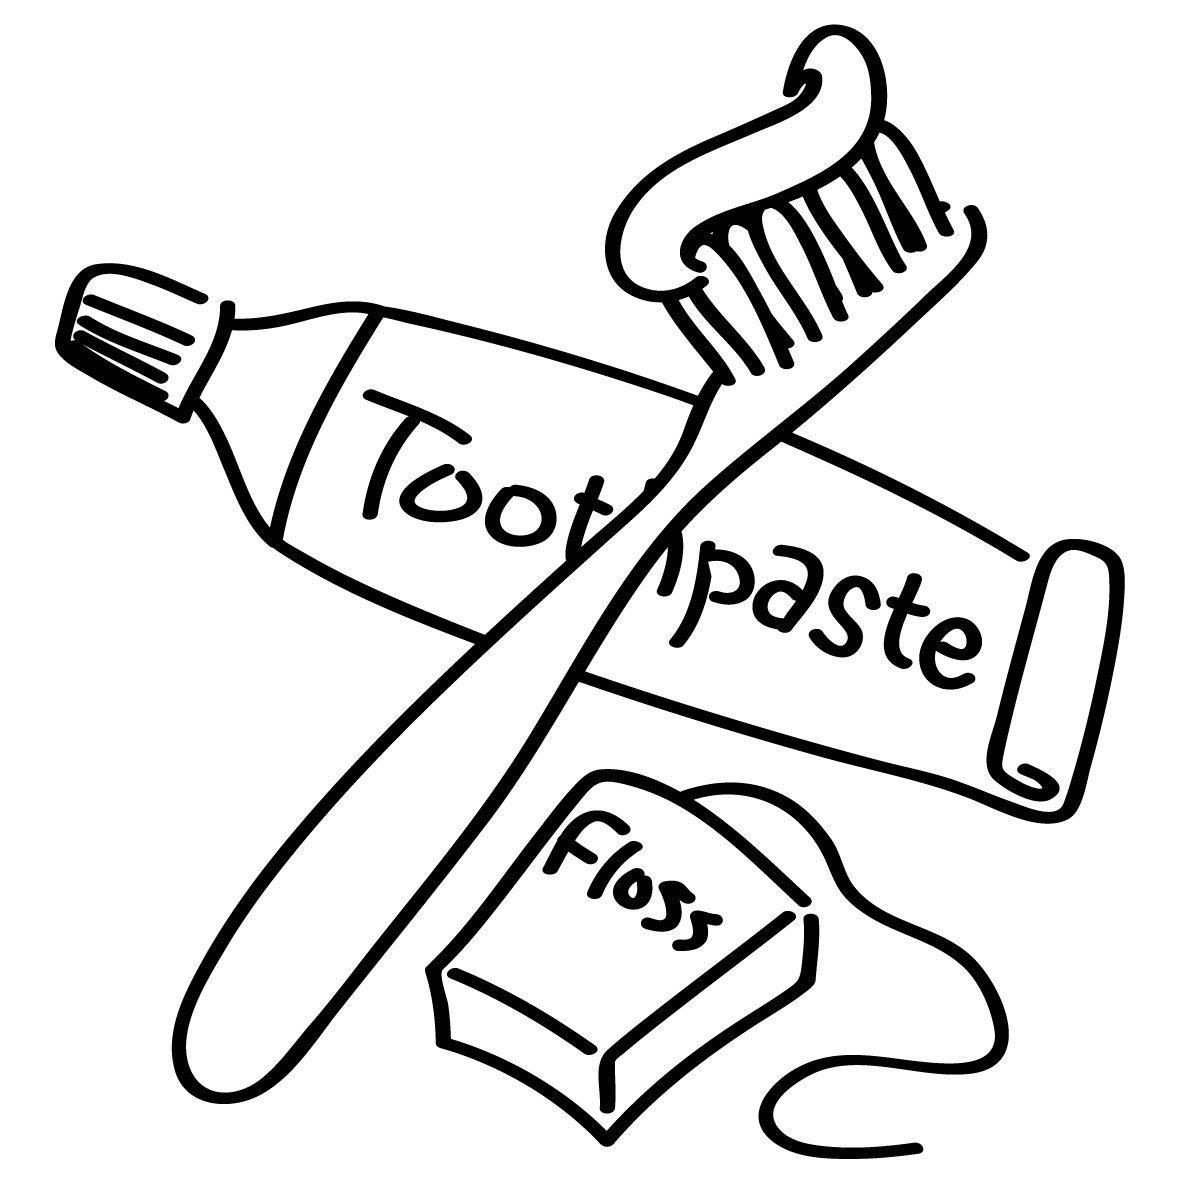 10 Coloring Page Brushing Teeth Dental Hygiene Hygiene Dental Reviews